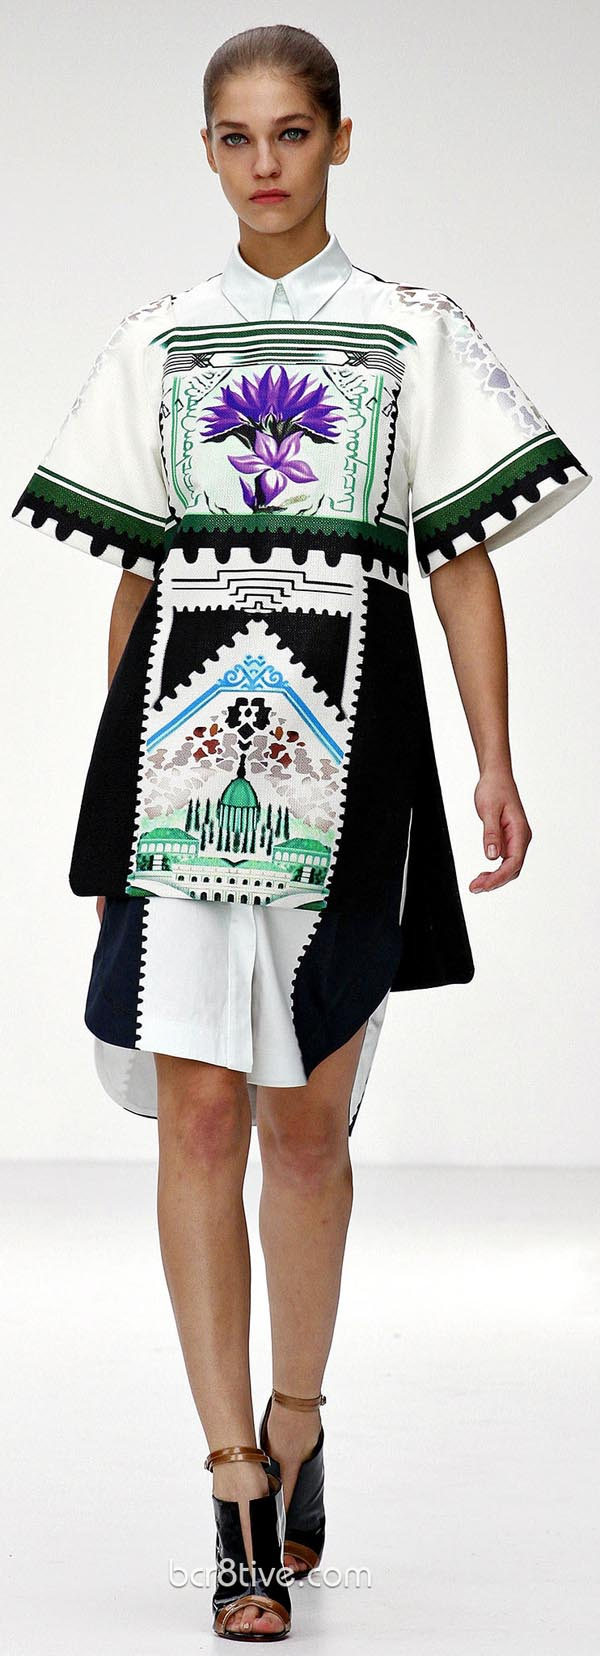 Mary Katrantzou Spring Summer 2013